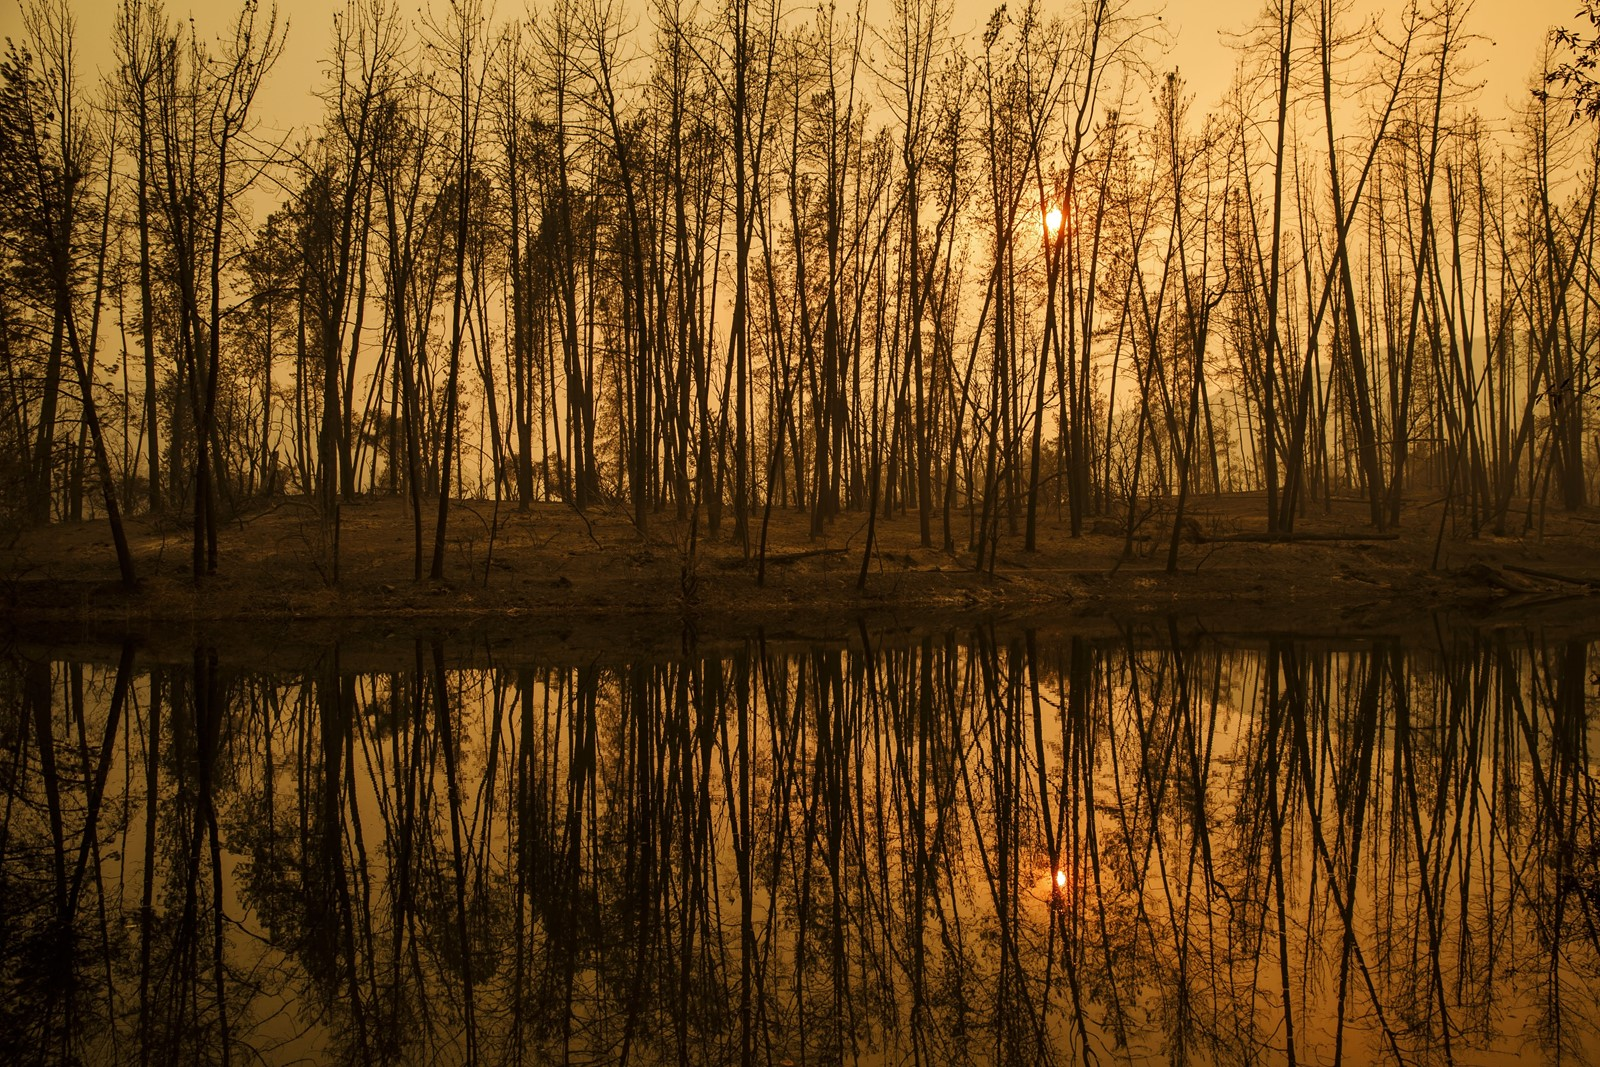 The sun sets among trees burned in Whiskeytown, California, near Redding, where the Carr fire has been raging since late July. — Photograph: Marcus Yam/Los Angeles Times.